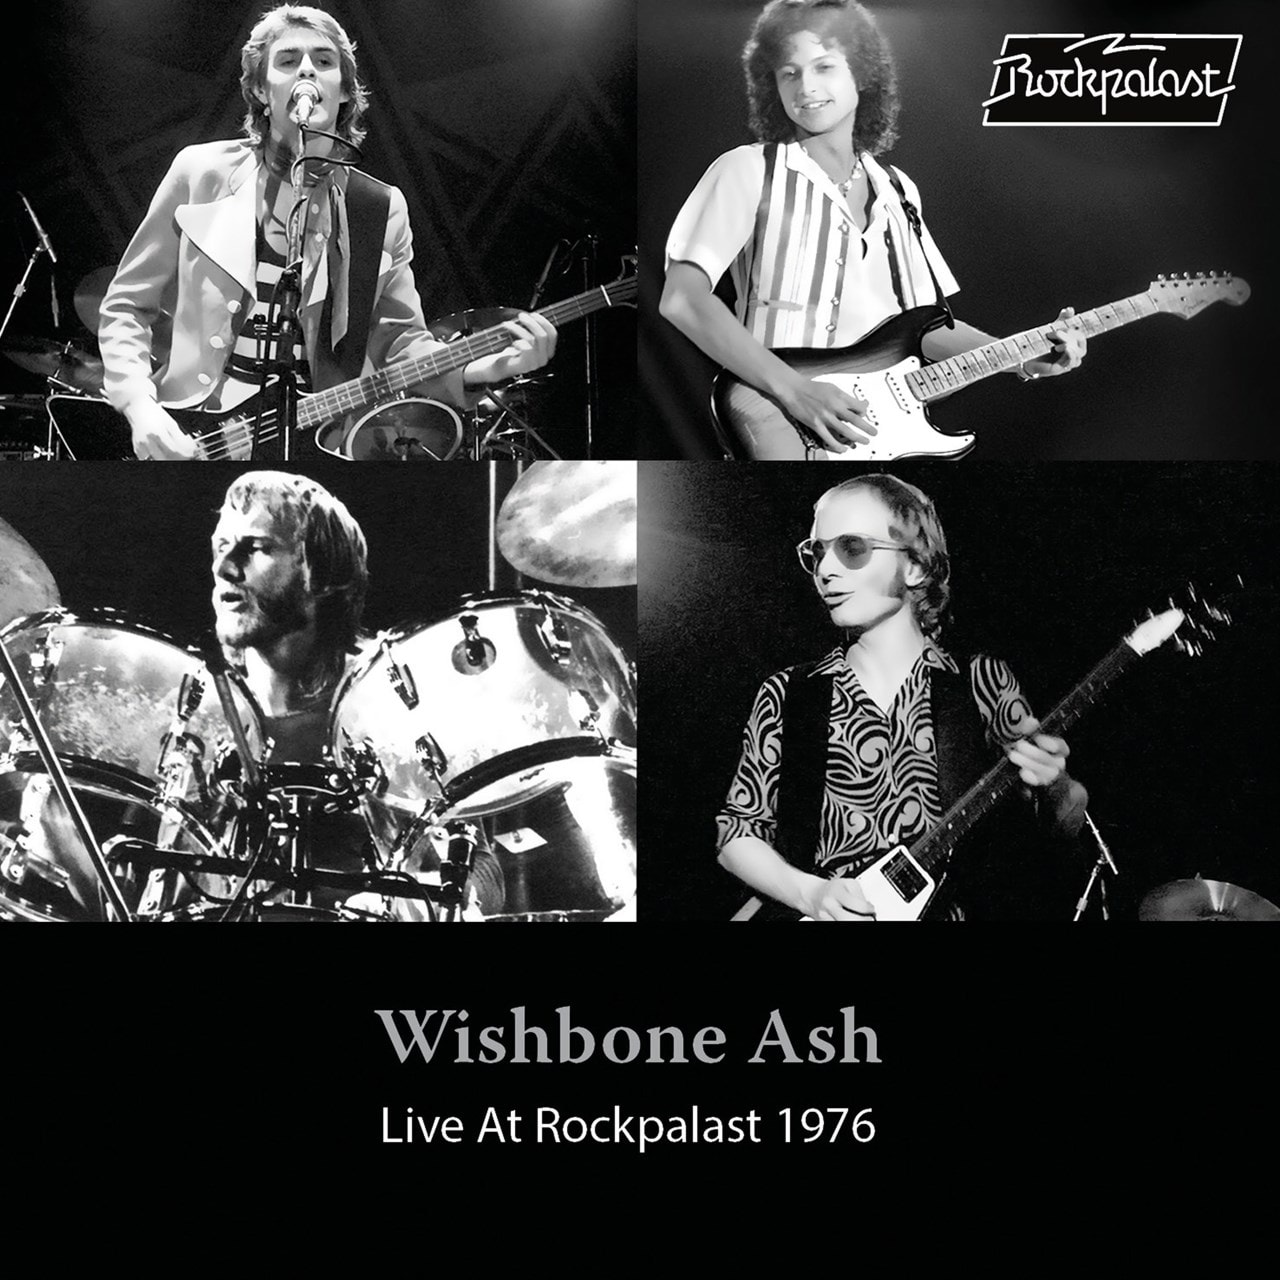 Live at Rockpalast 1976 - 1